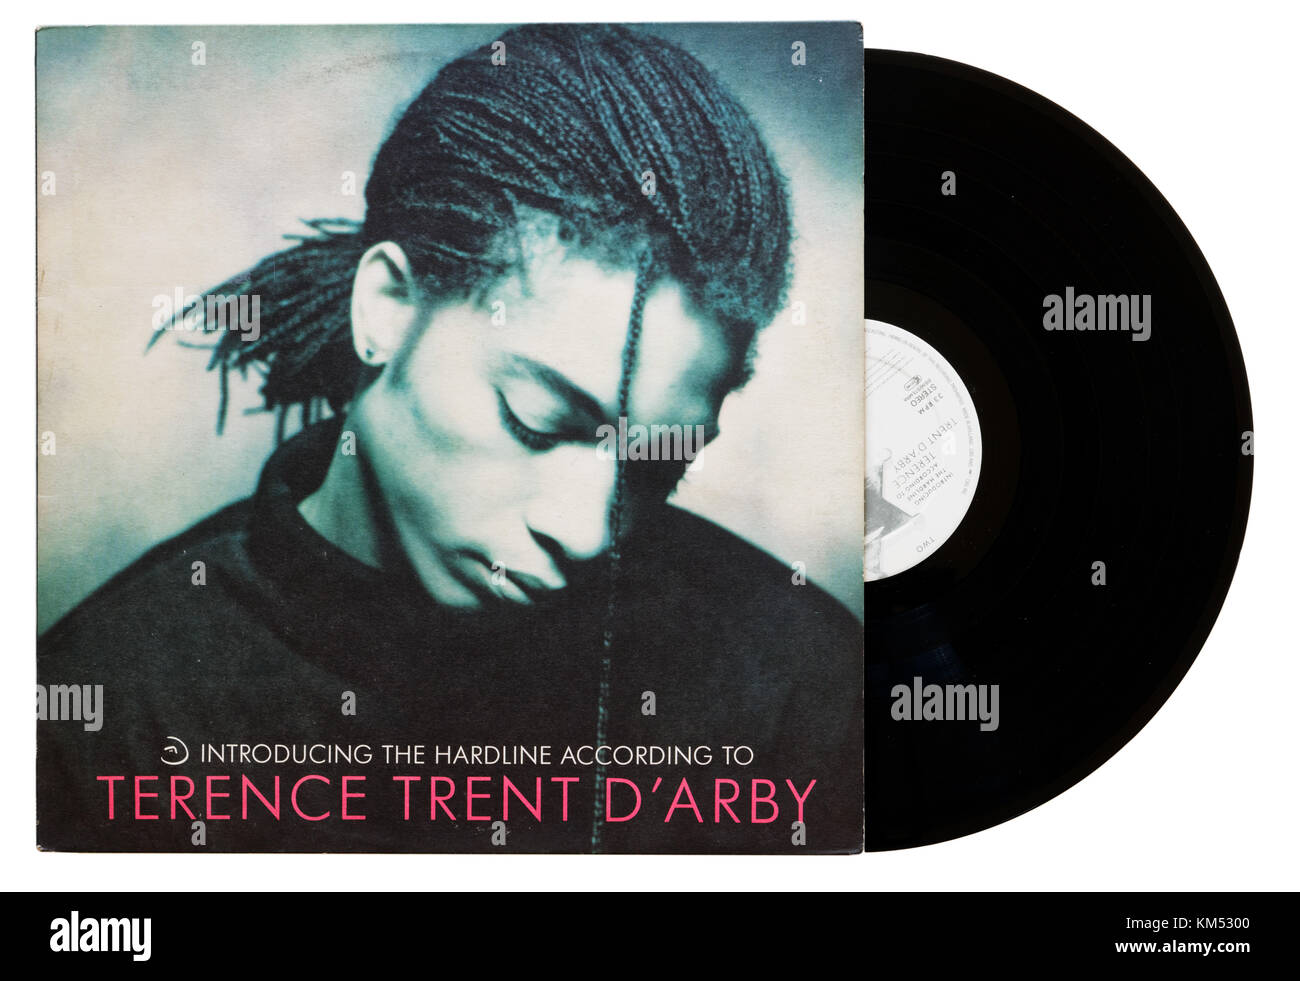 Introducing the Hardline According to Terence Trent D'Arby album - Stock Image